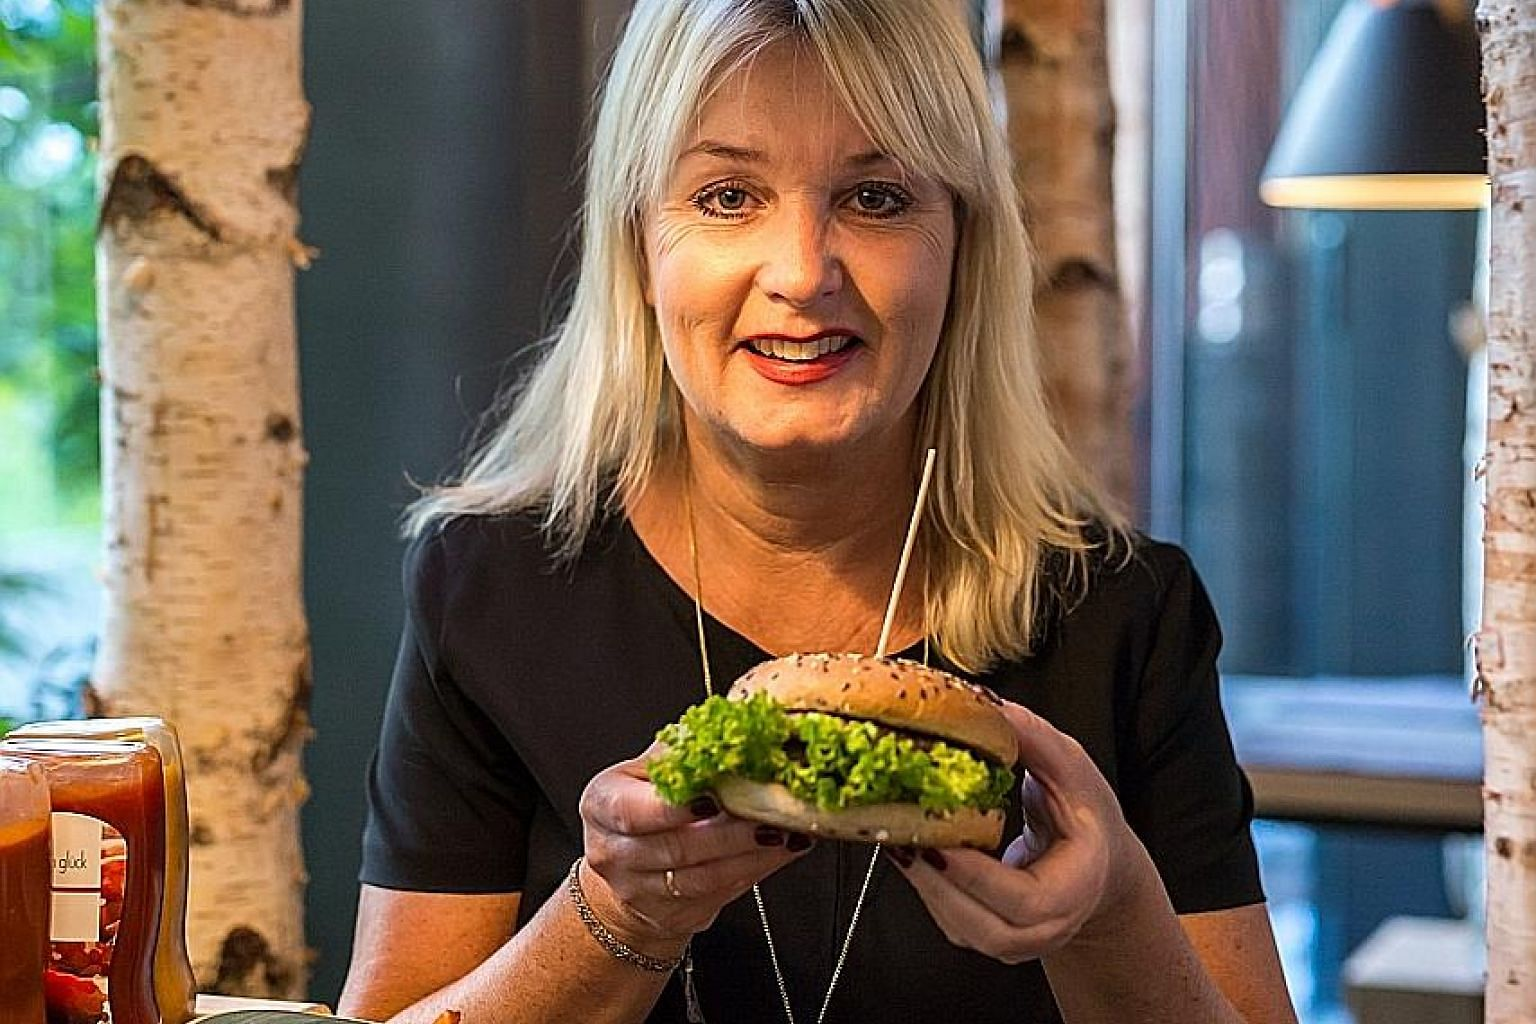 Mrs Gunilla Hirschberger, who co-founded Hans Im Gluck with her husband, Mr Thomas Hirschberger, is vegan.